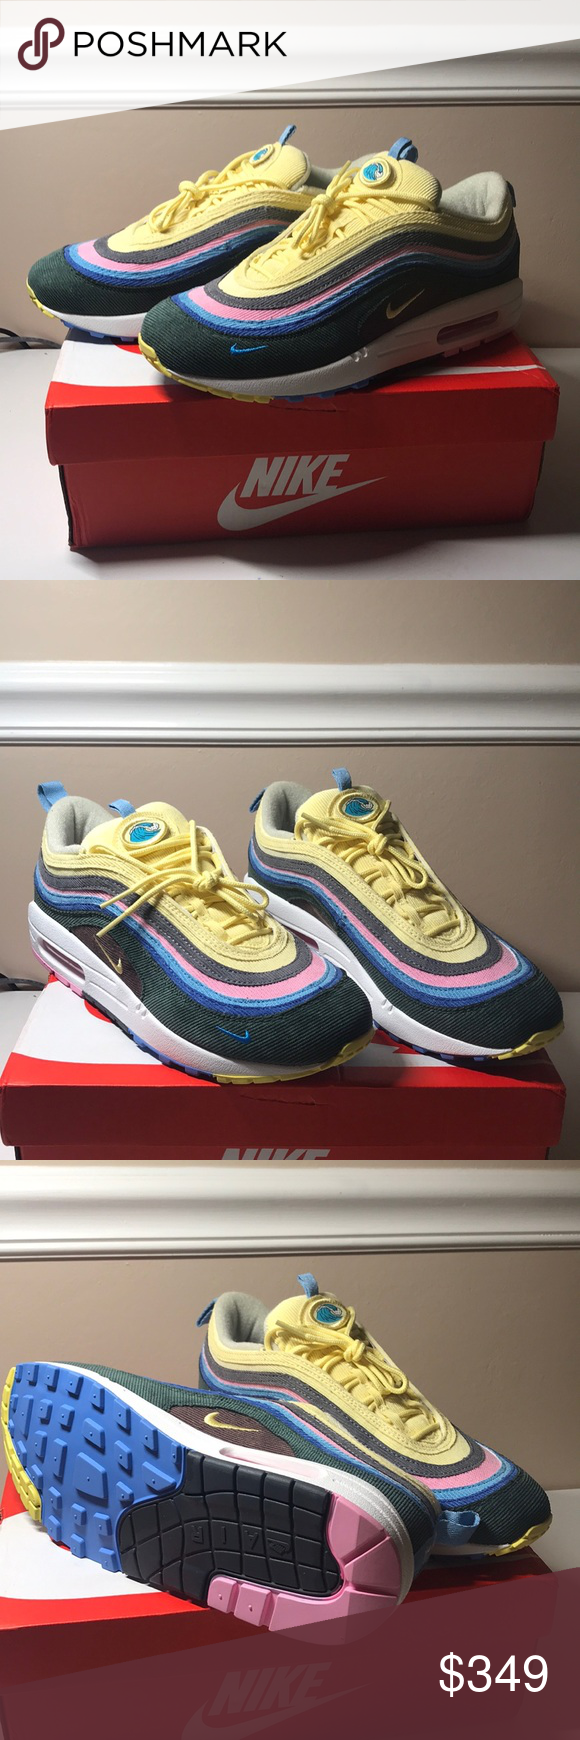 outlet store 34da5 67cea nike sean wotherspoon air max 1/97 9.5 brand new sean ...